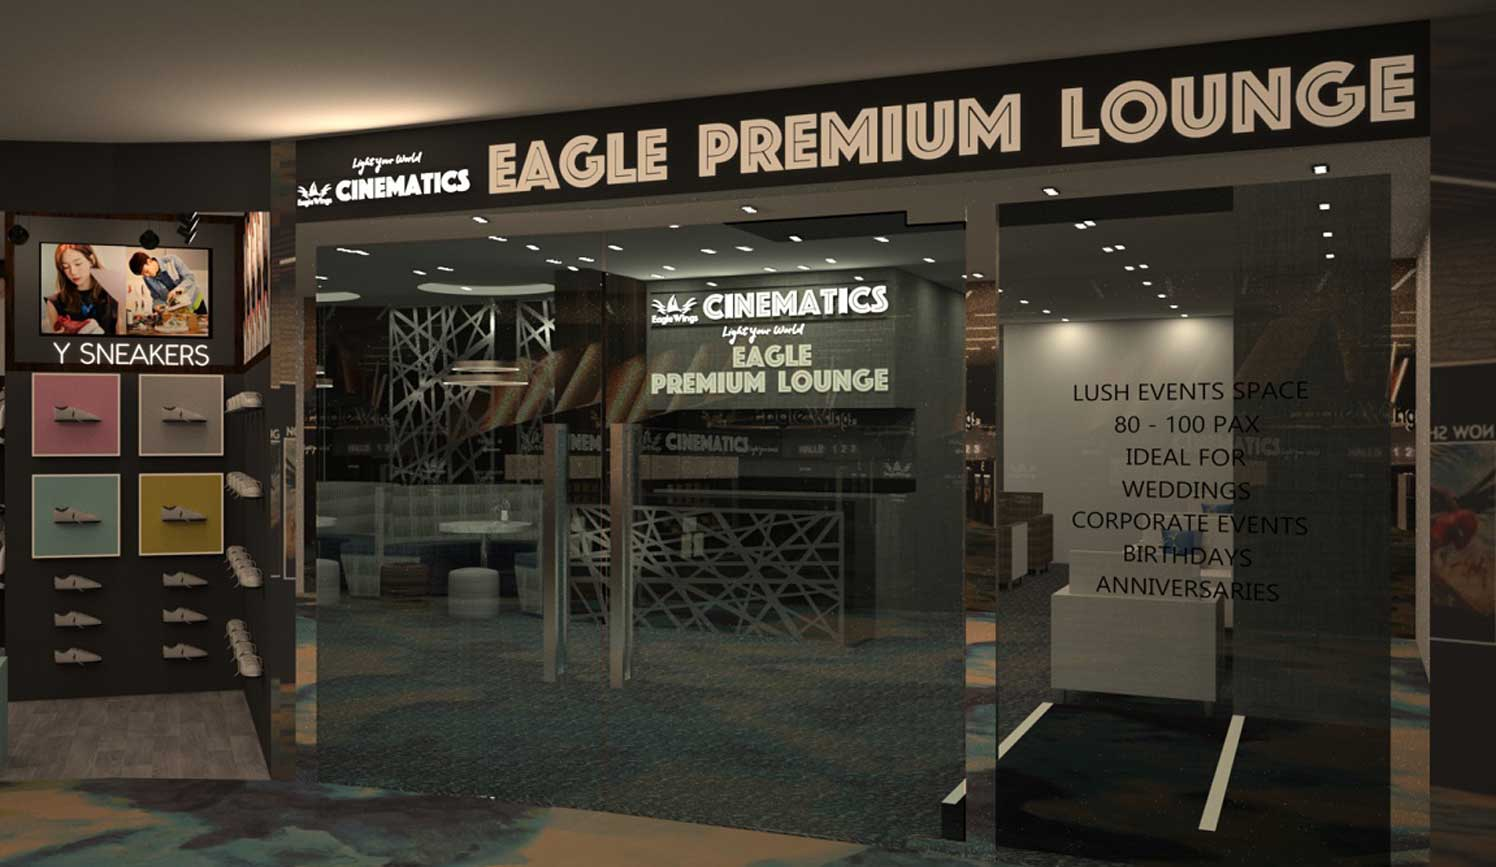 EagleWings Premium Lounge